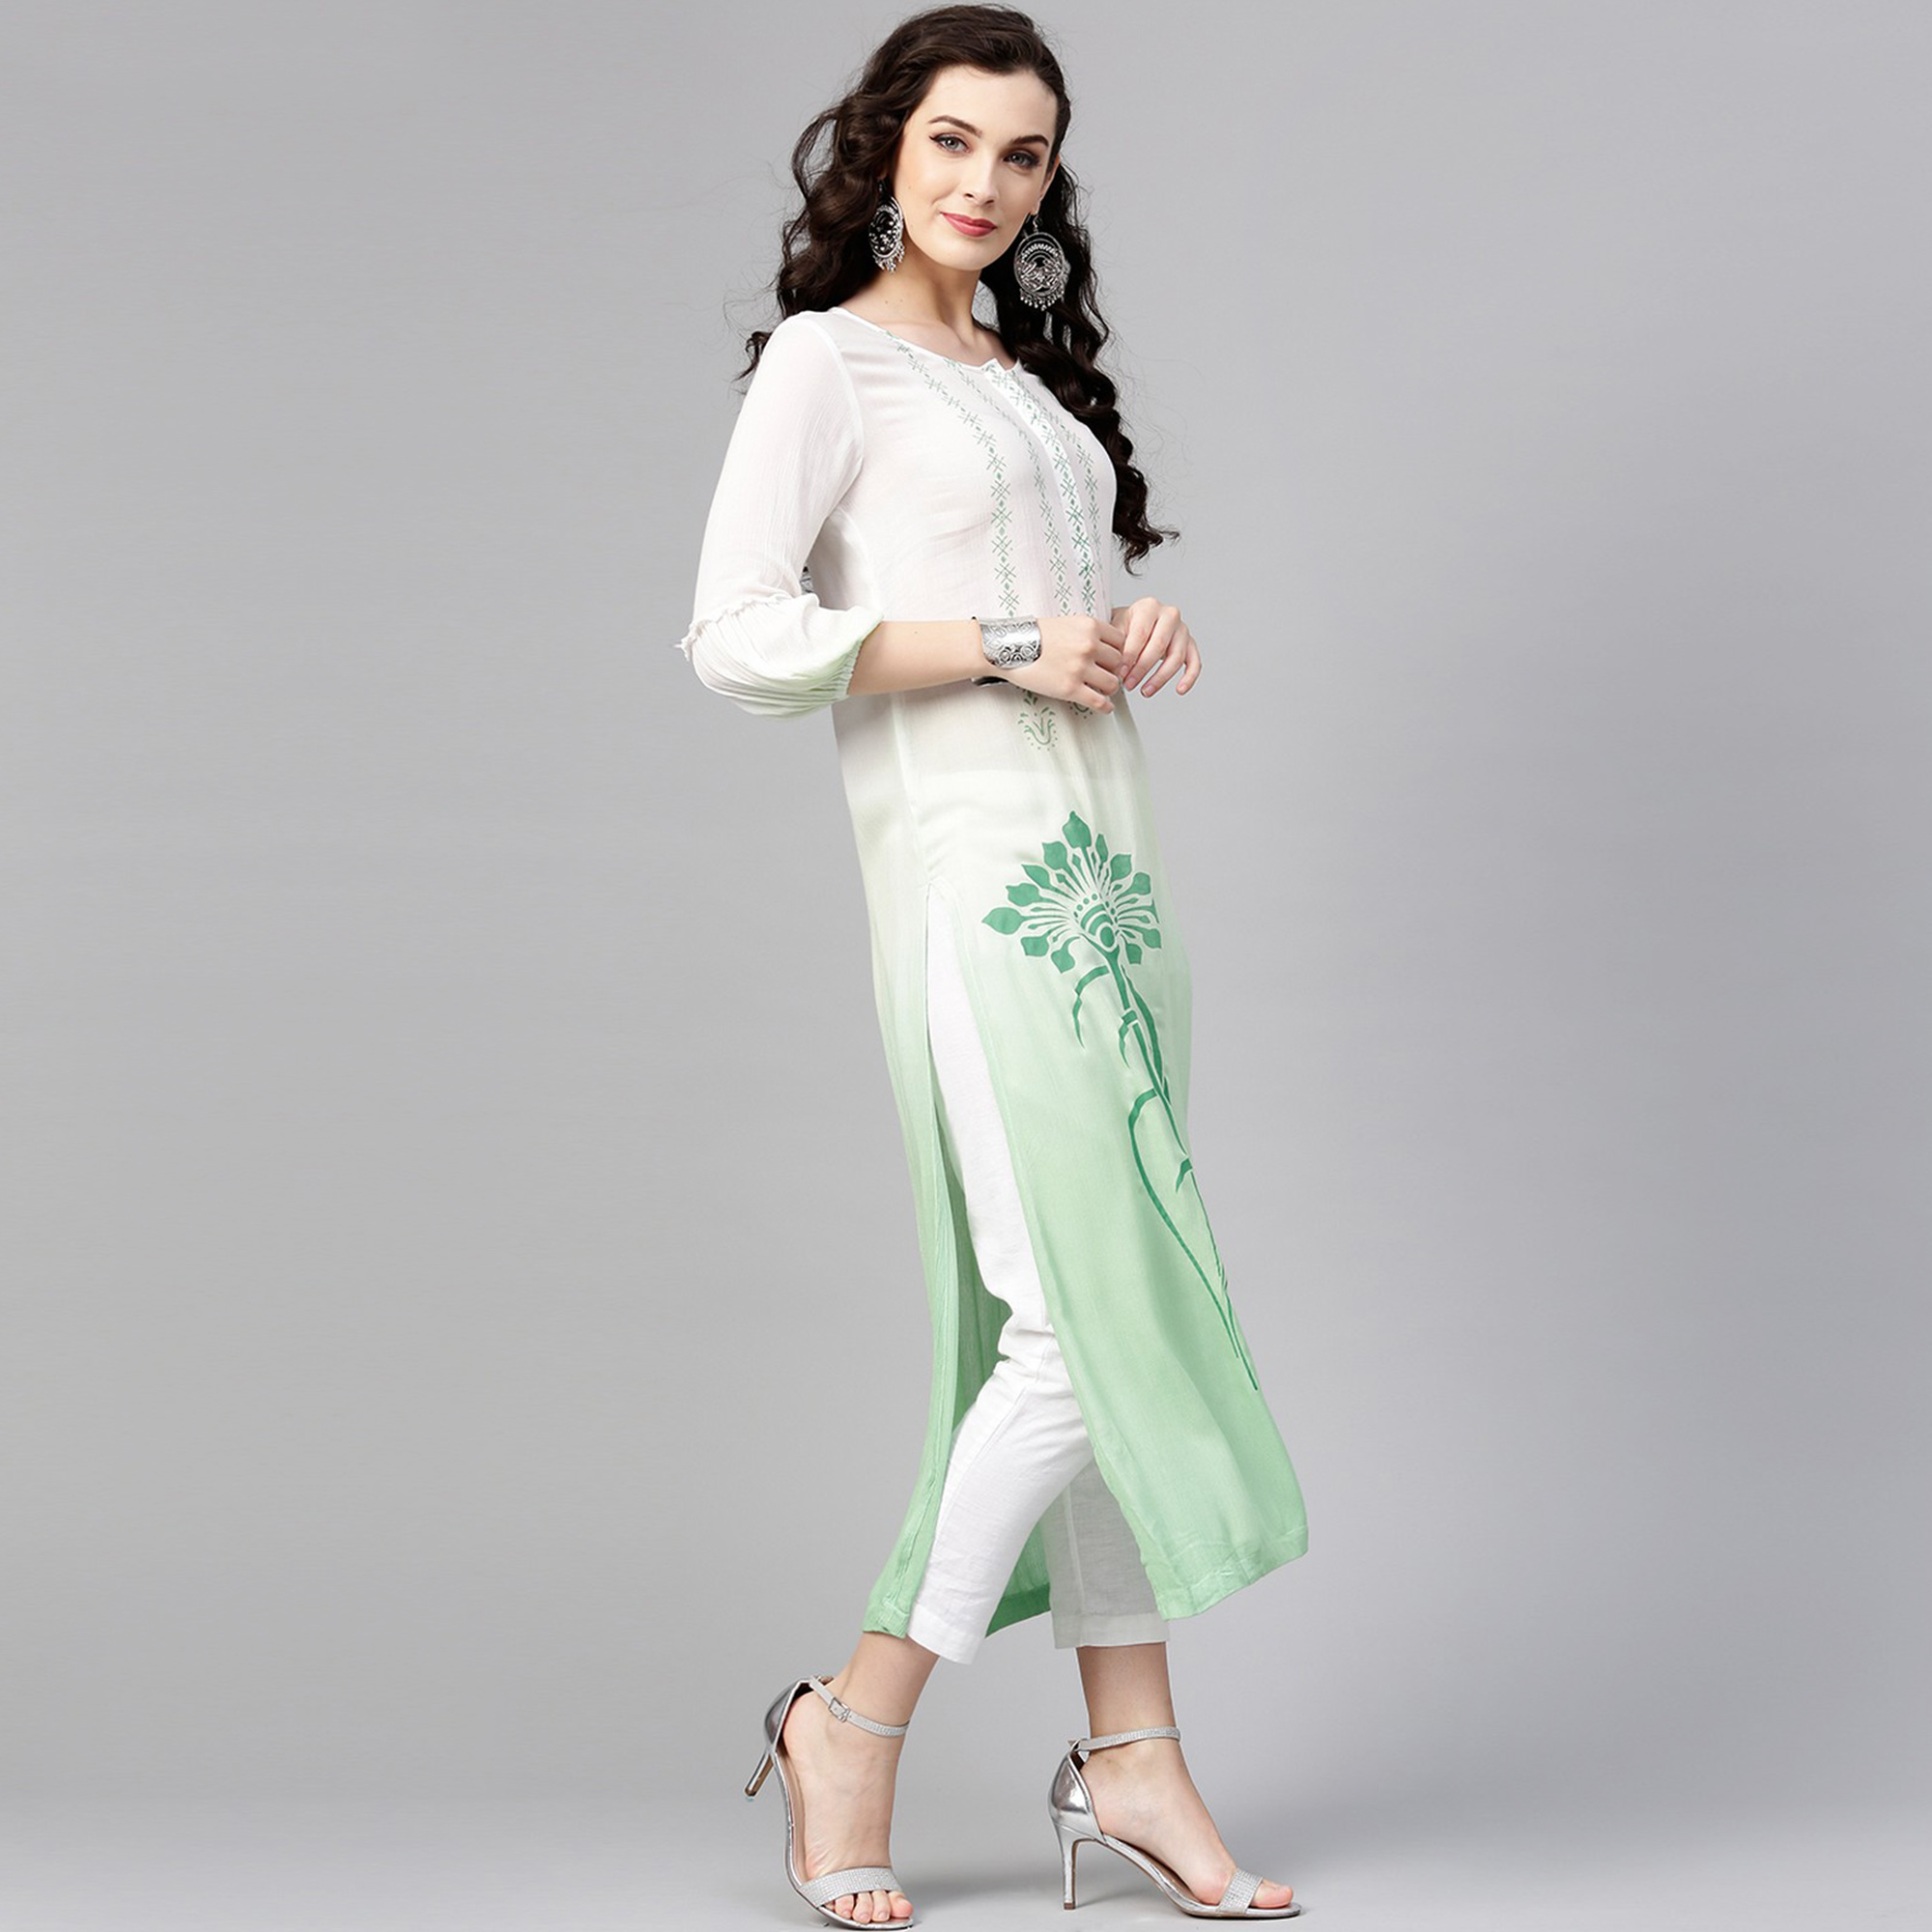 Refreshing White-Green Colored Party Wear Printed Rayon Crepe Kurti